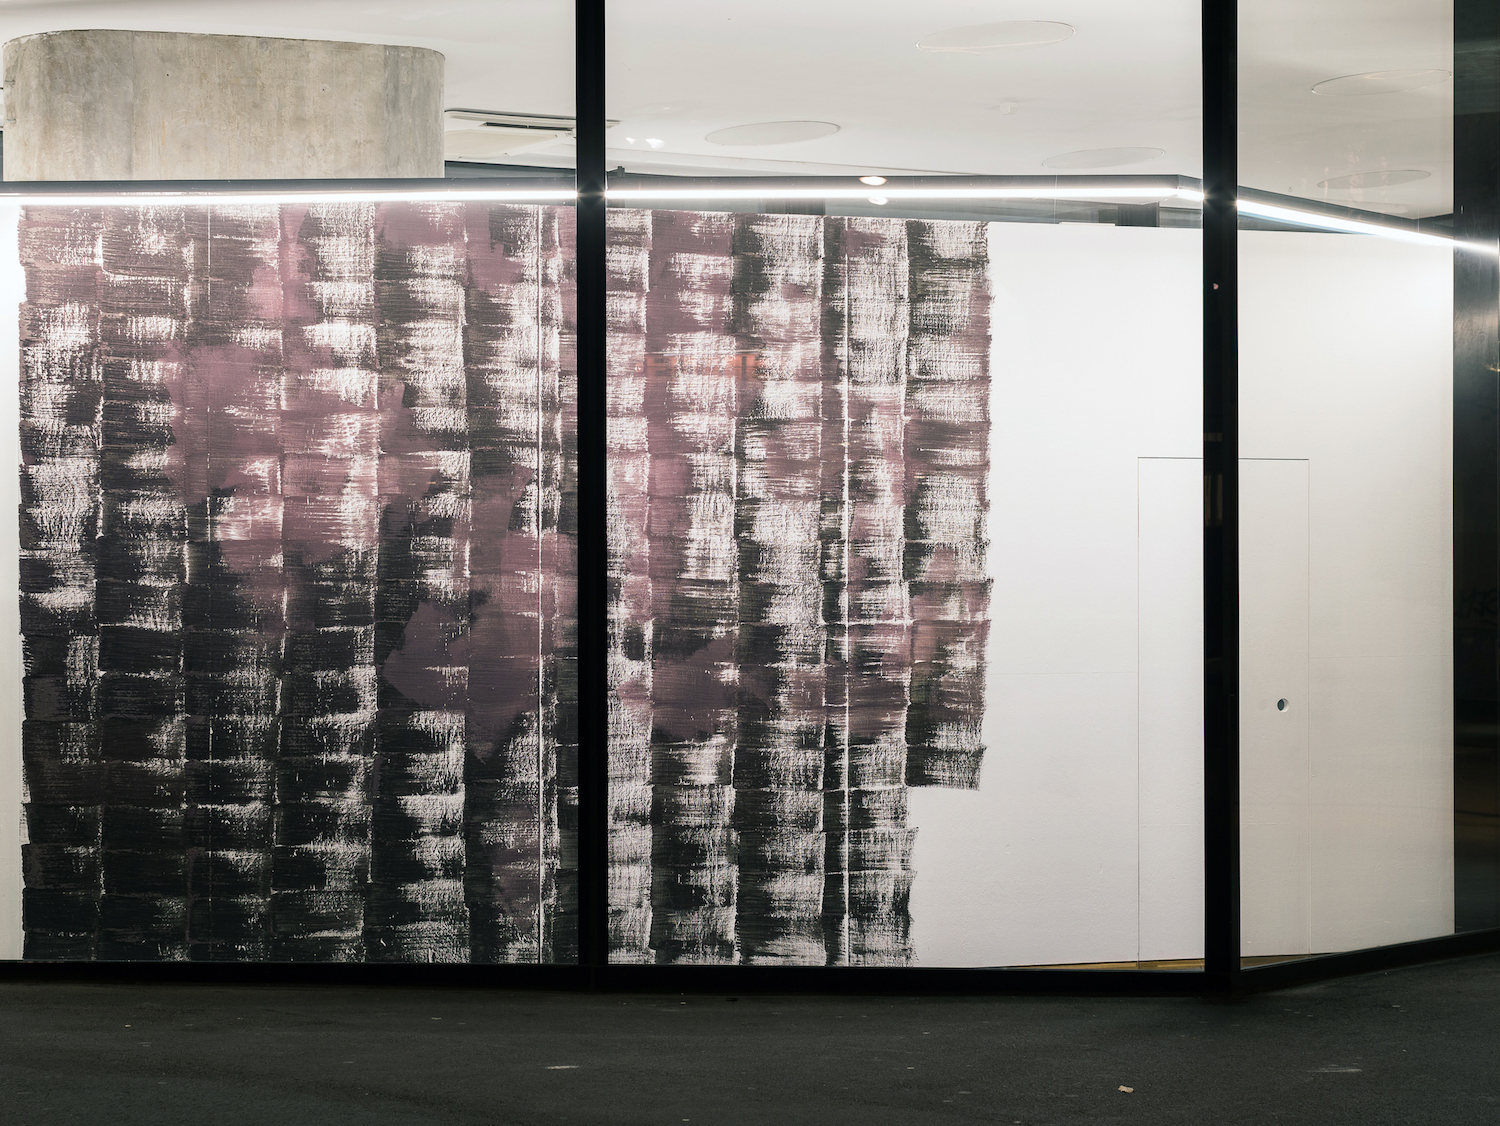 Hannah Lees, Nothing Can Ever Change, 2019. Red wine lees. Photographer: Nicolas Gysin.